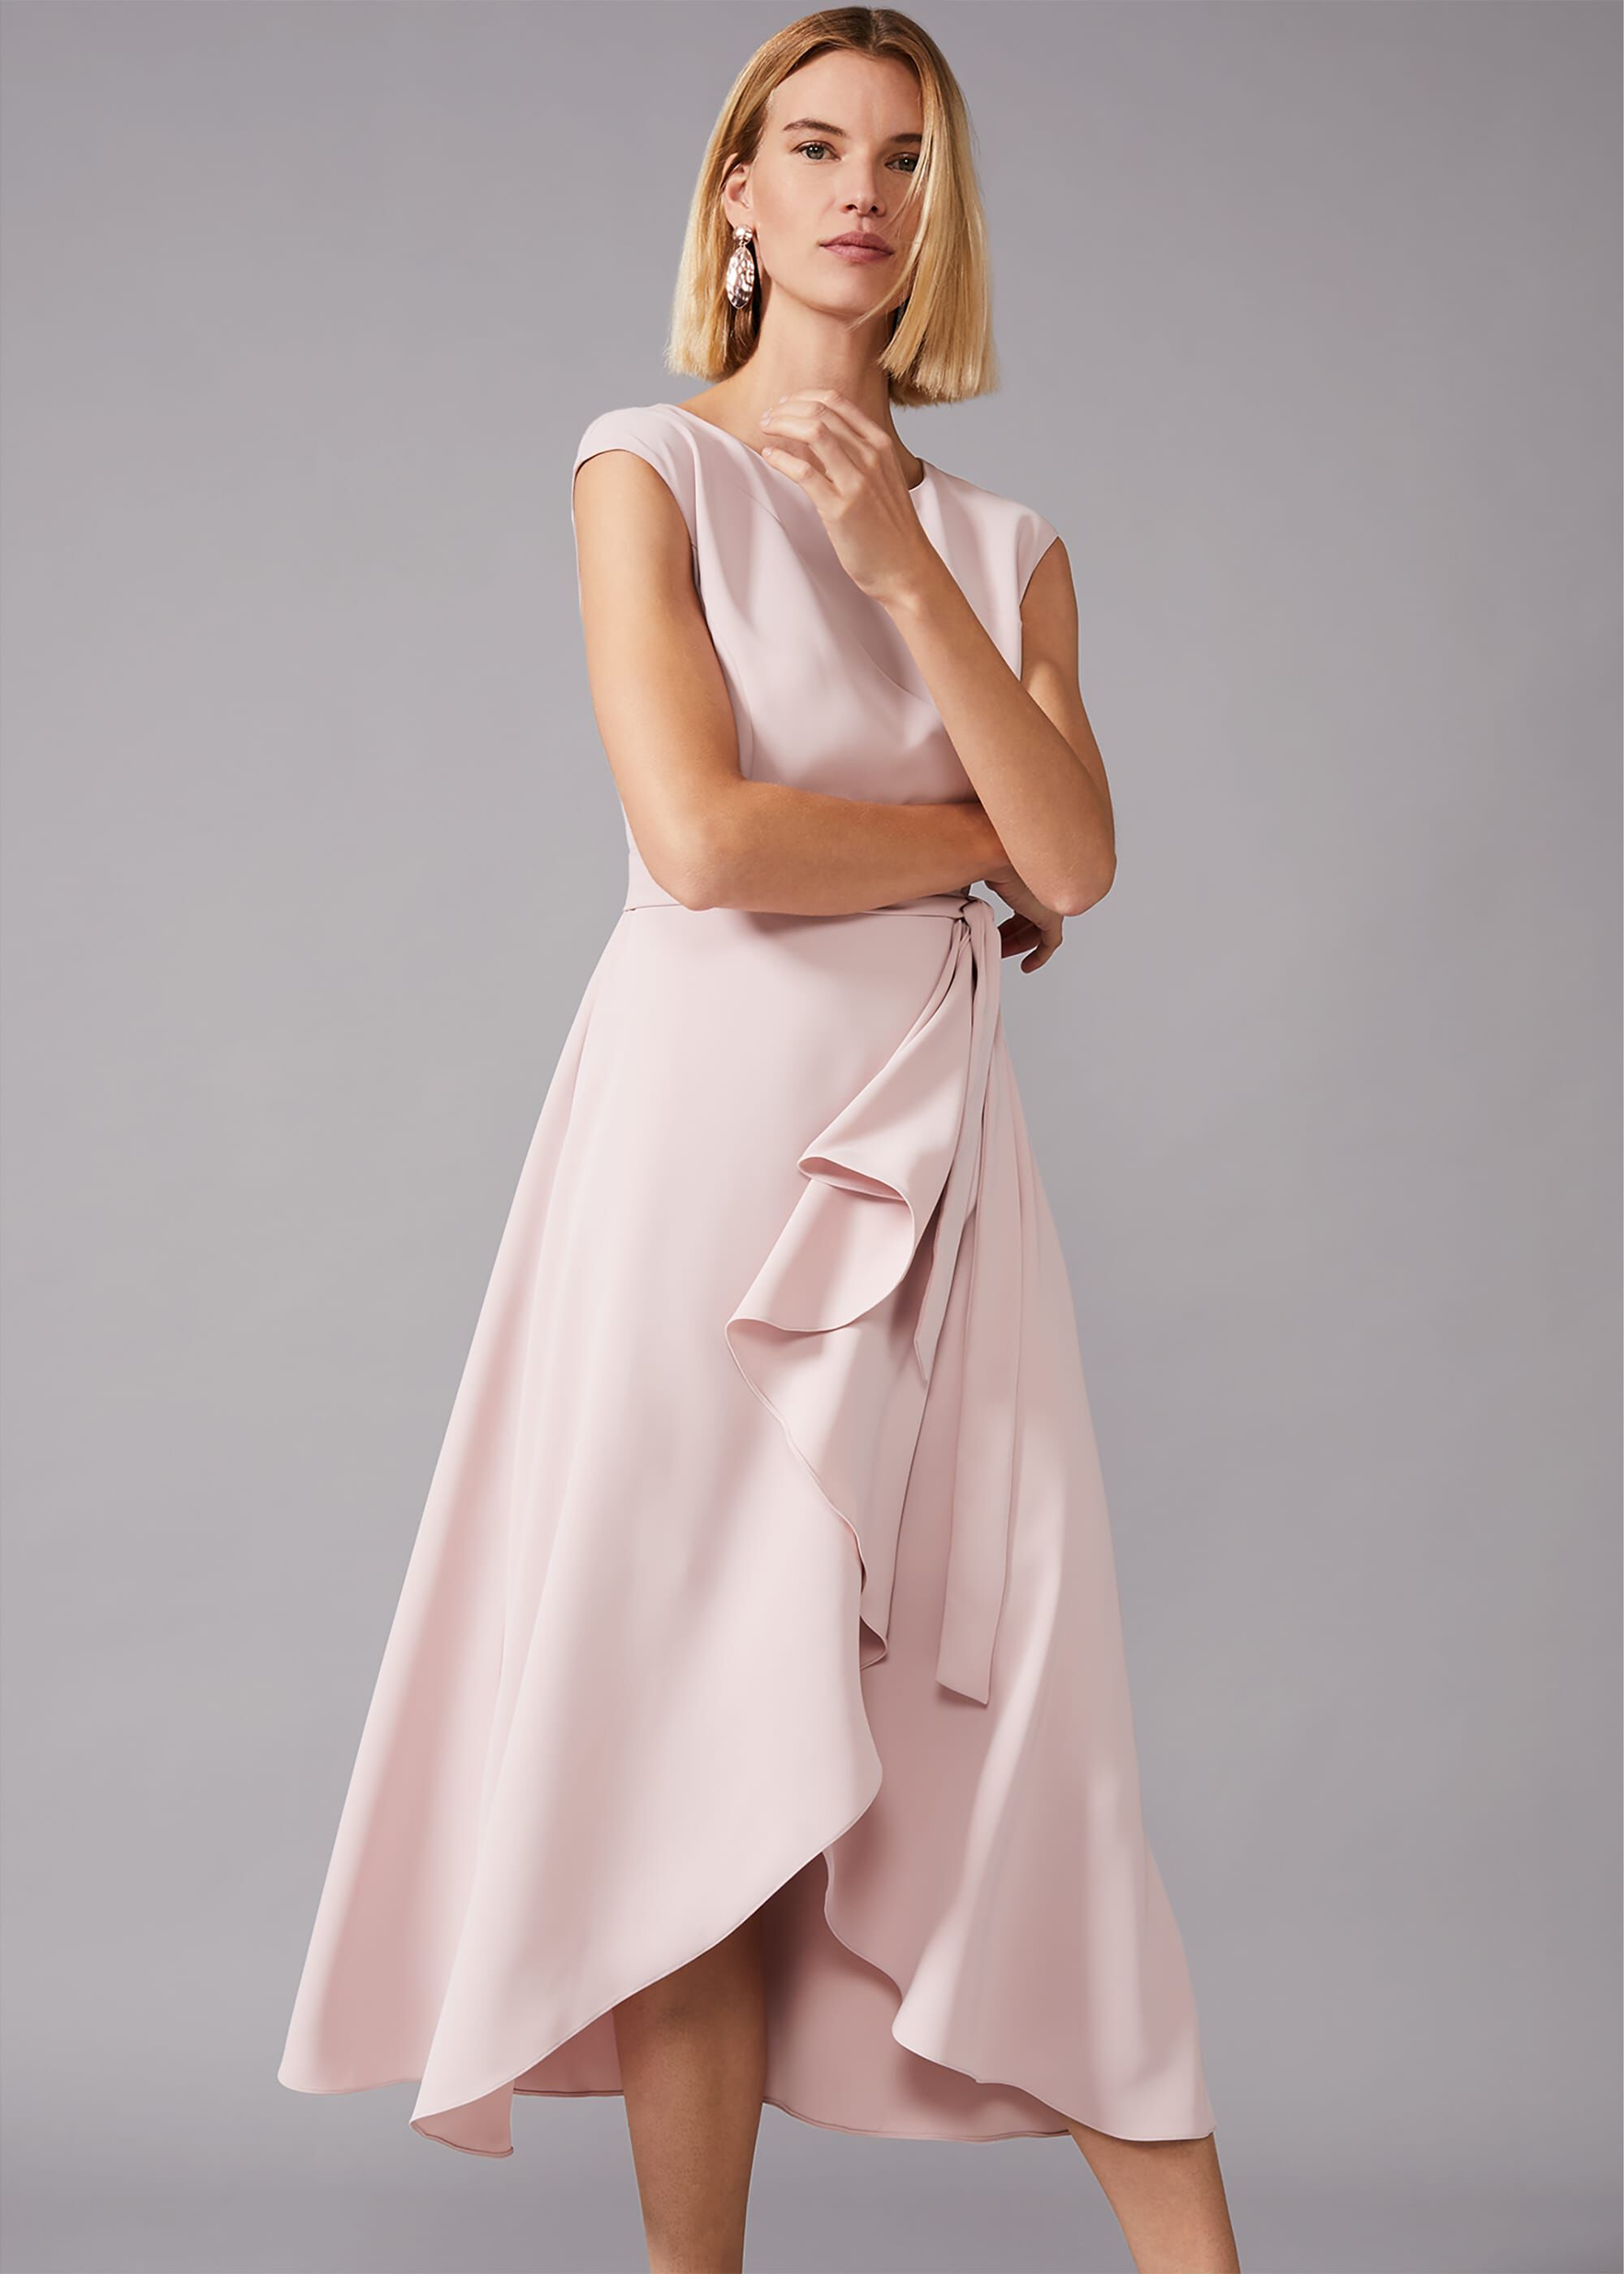 Phase Eight Rushelle Frill Midi Dress, Pink, Fit & Flare, Occasion Dress